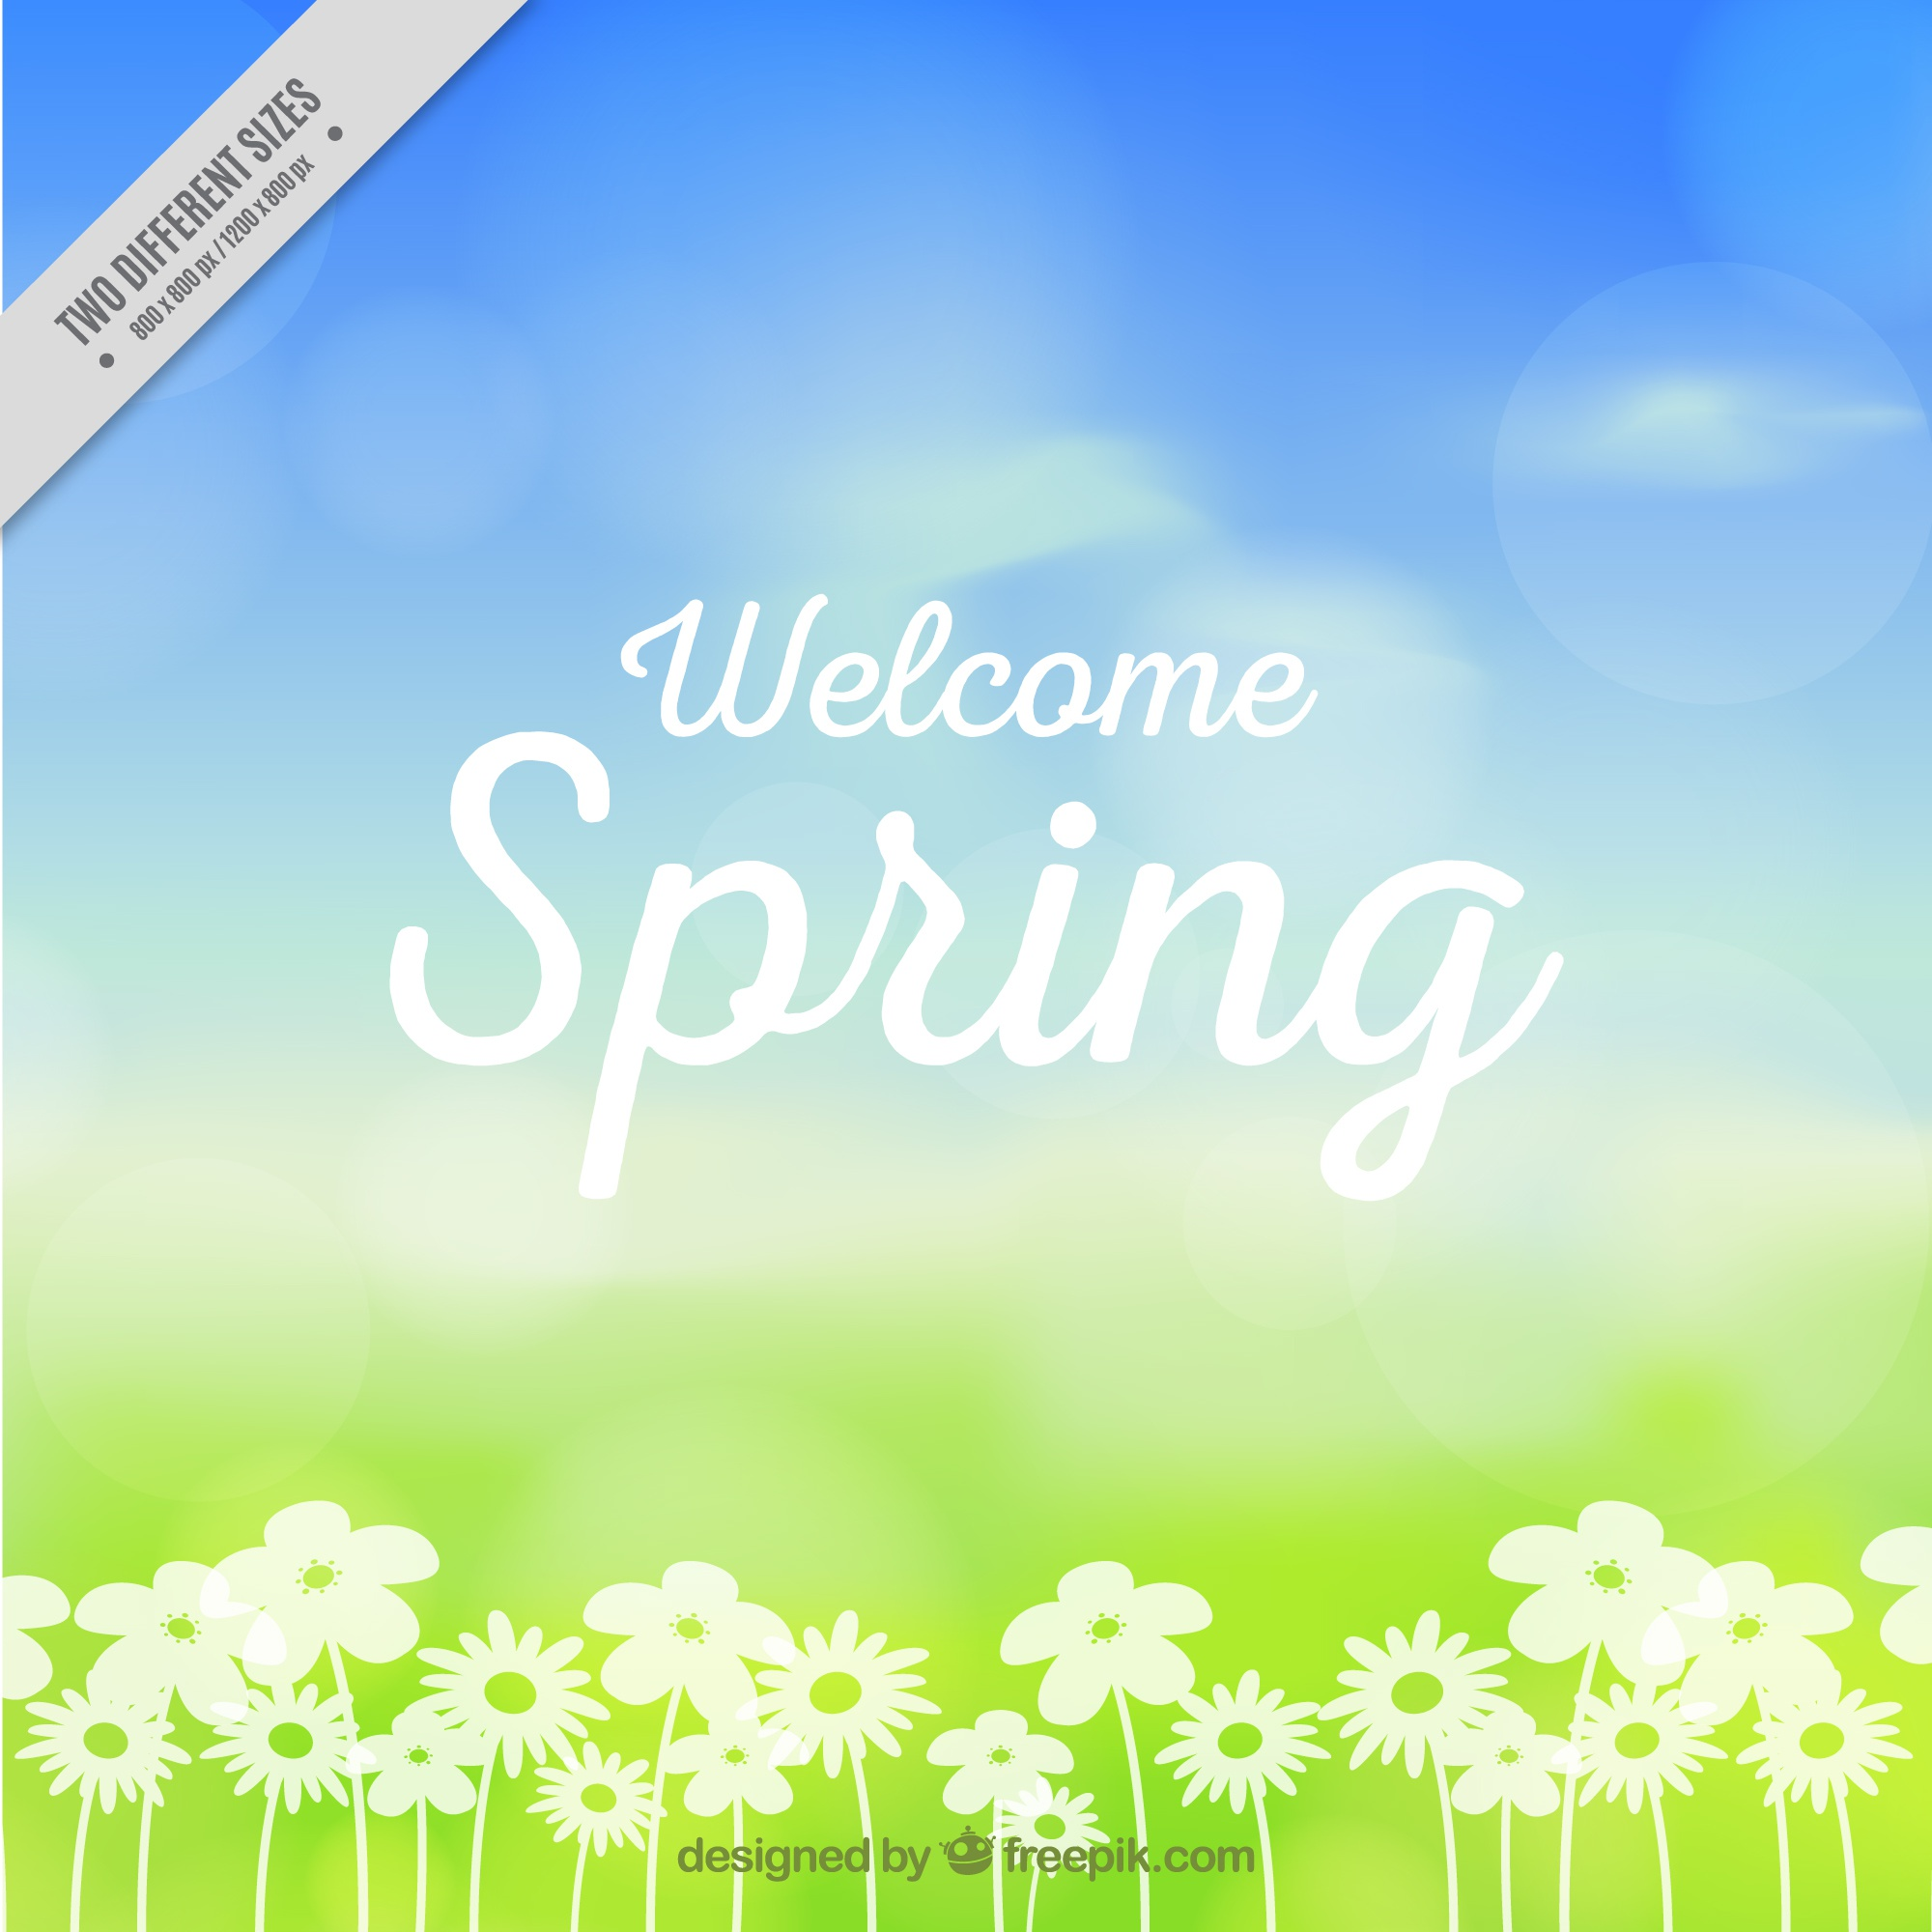 Blurred spring background with flowers